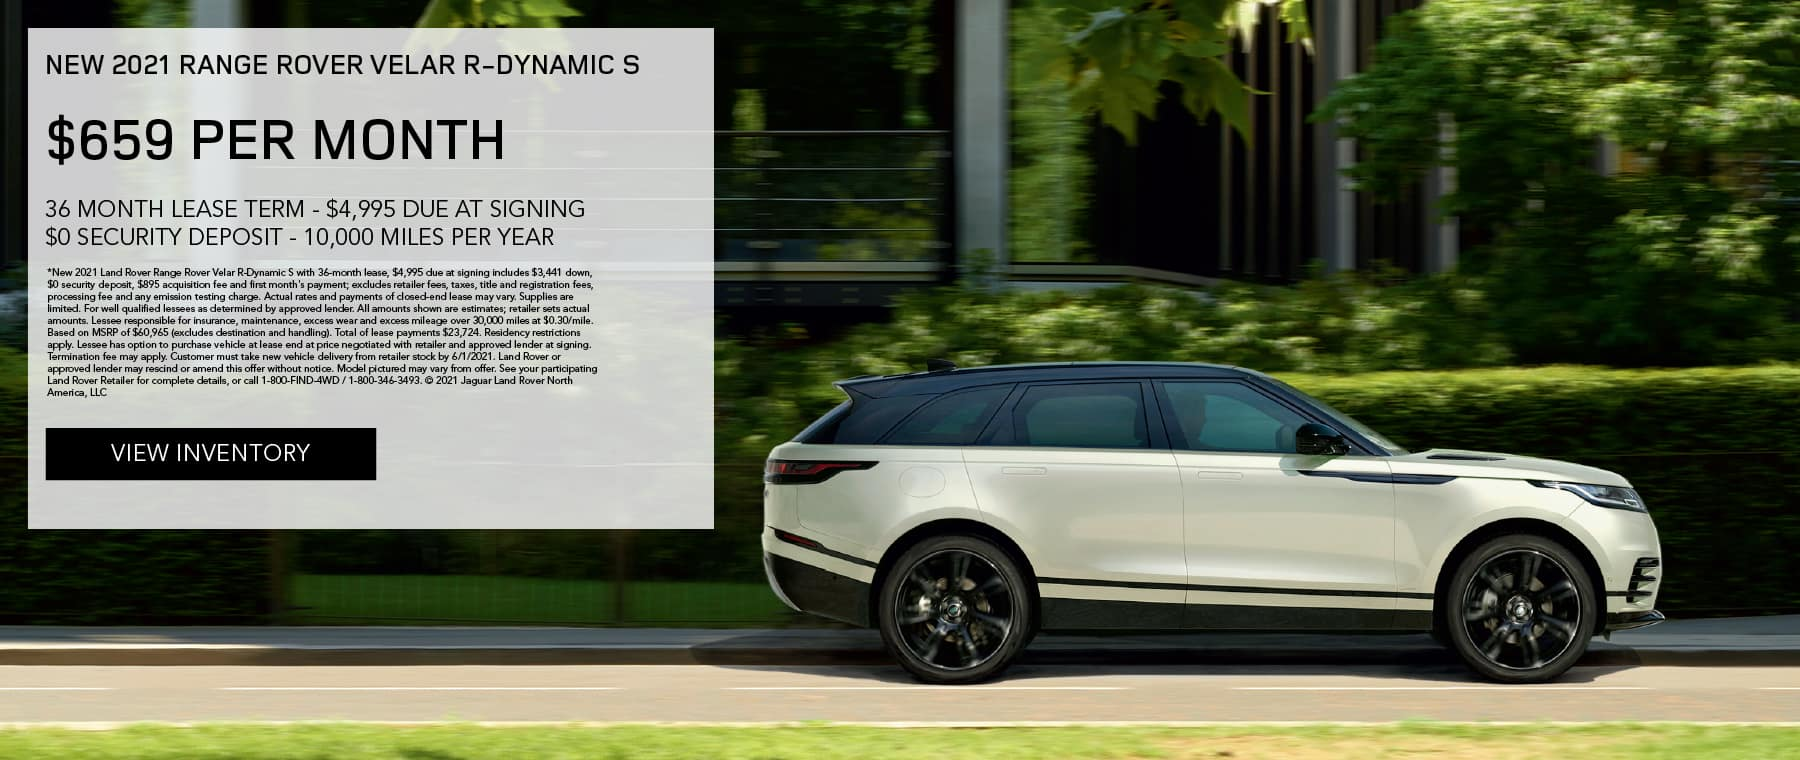 NEW 2021 RANGE ROVER VELAR R-DYNAMIC S. $659 PER MONTH. 36 MONTH LEASE TERM. $4,995 CASH DUE AT SIGNING. $0 SECURITY DEPOSIT. 10,000 MILES PER YEAR. EXCLUDES RETAILER FEES, TAXES, TITLE AND REGISTRATION FEES, PROCESSING FEE AND ANY EMISSION TESTING CHARGE. ENDS 6/1/2021.VIEW INVENTORY. SILVER RANGE ROVER VELAR DRIVING THROUGH CITY.